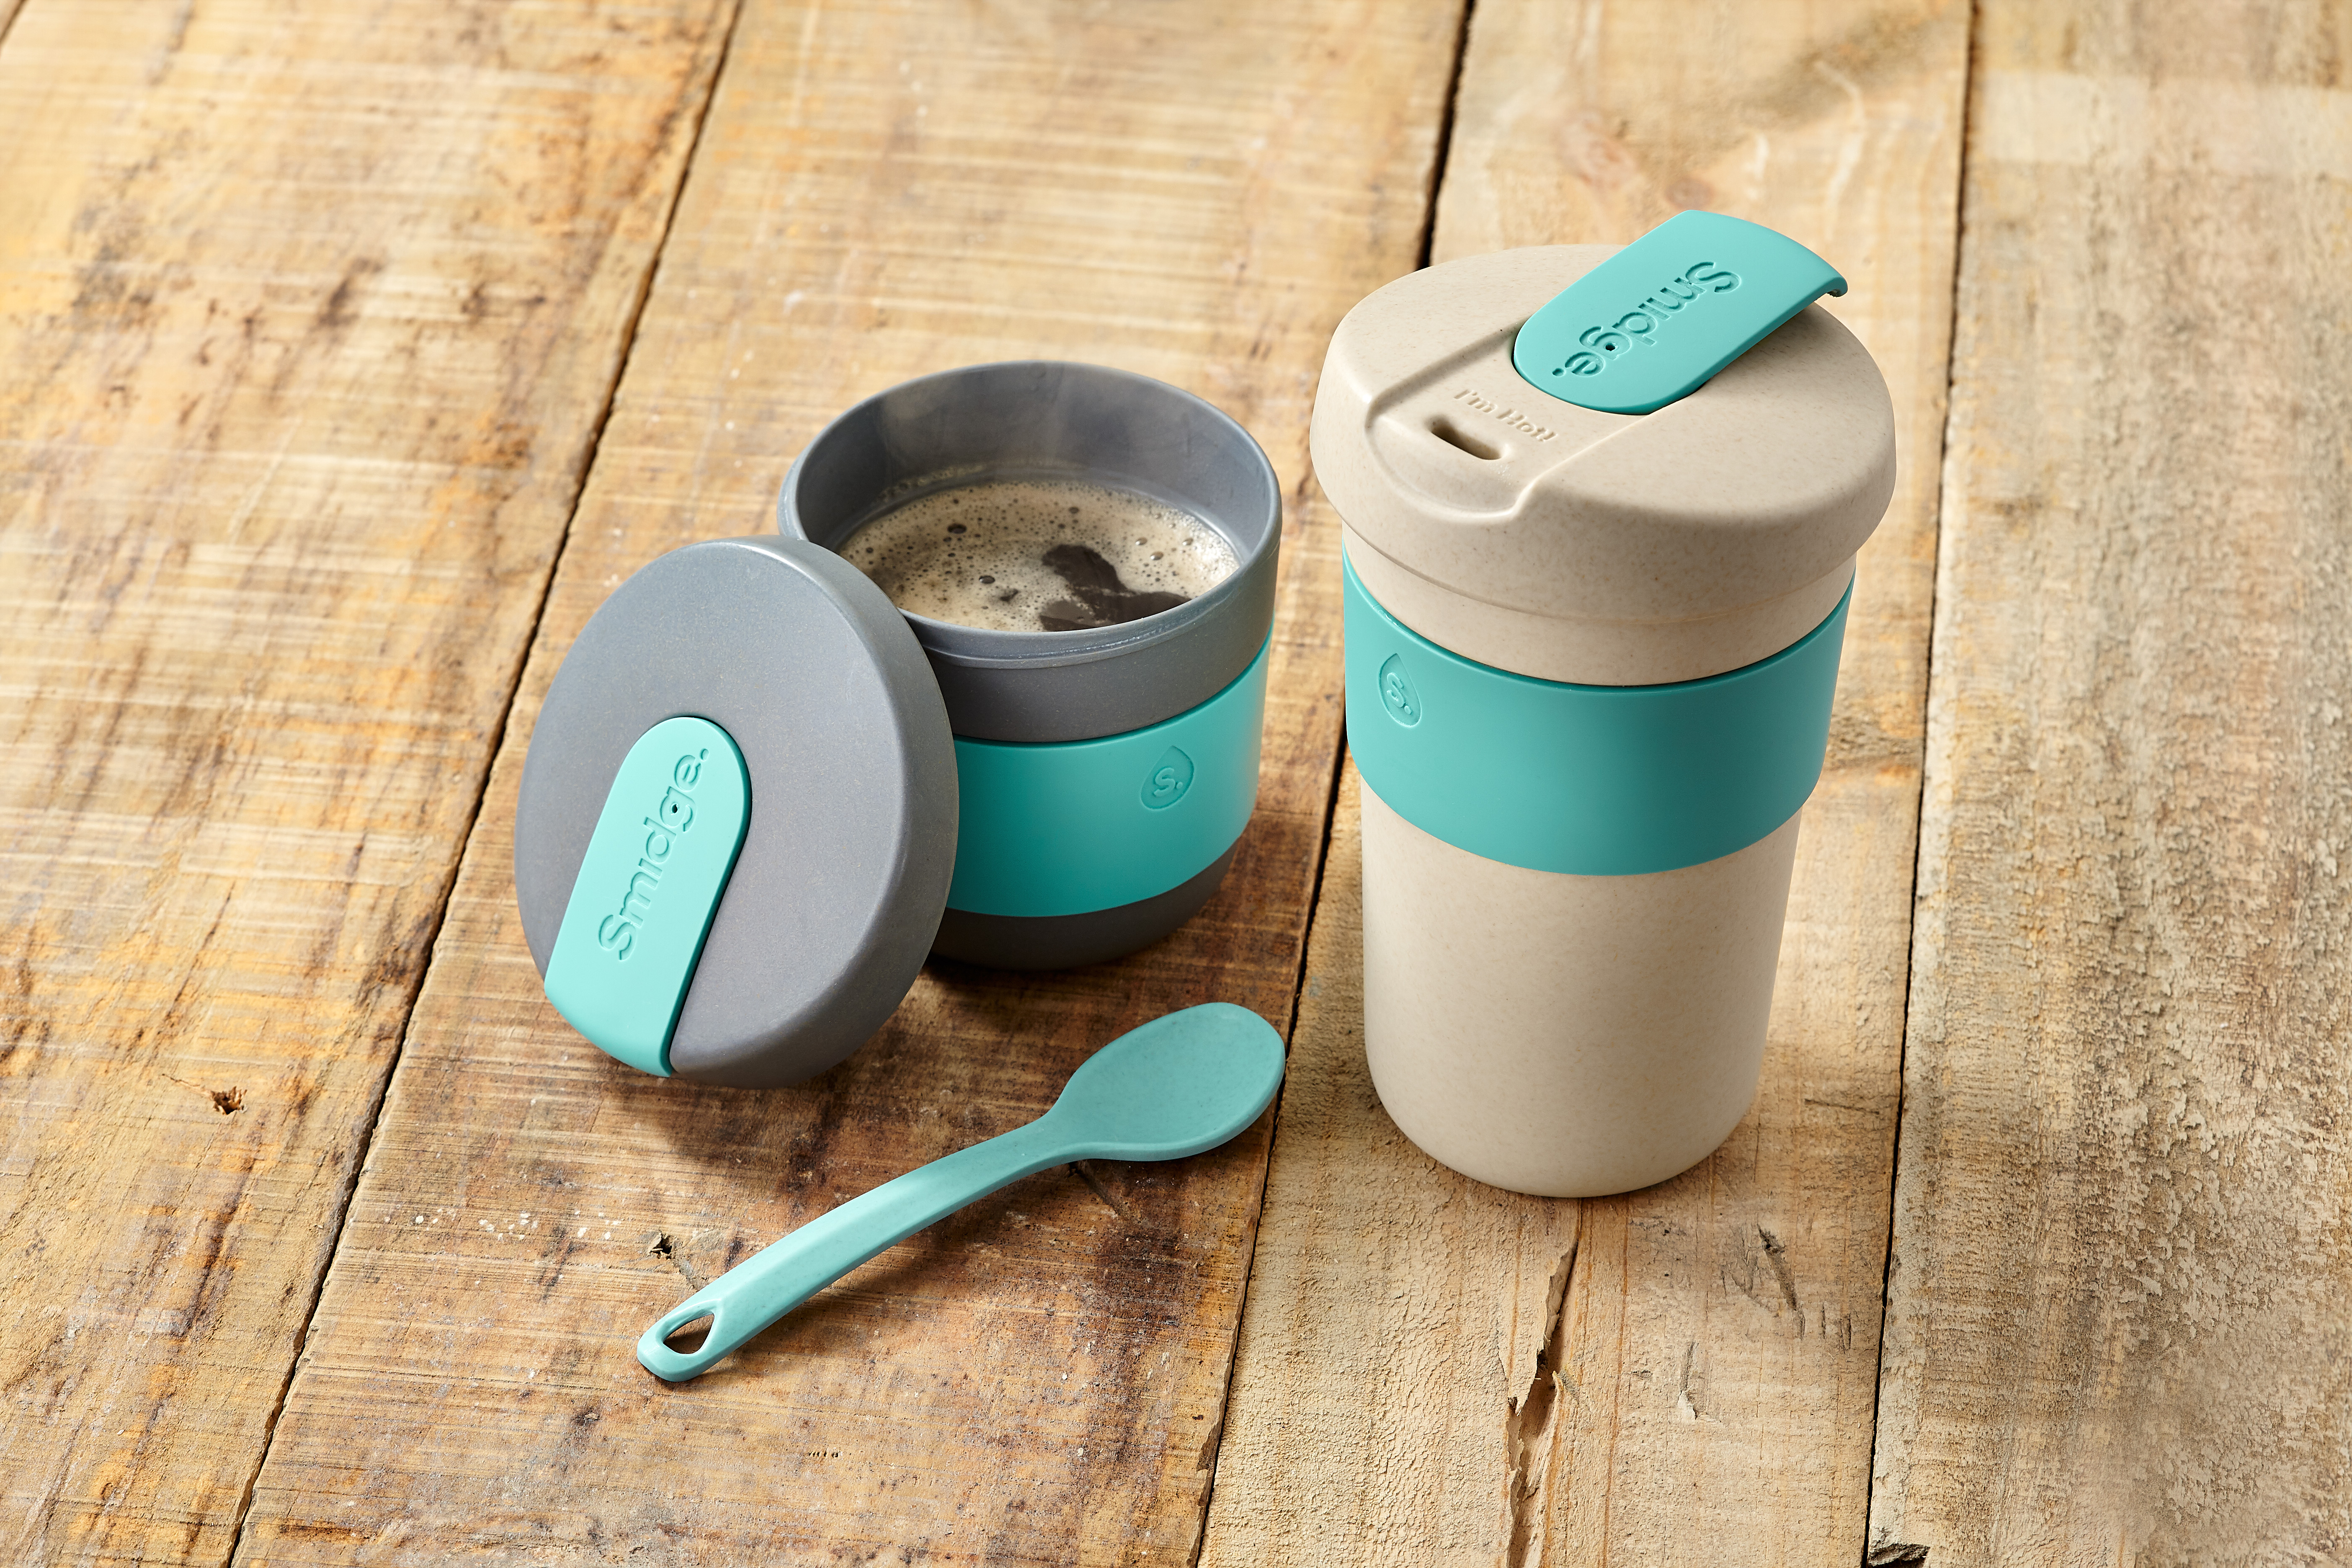 Smidge coffee cups from Horwood - an example of new product in the hydration category.